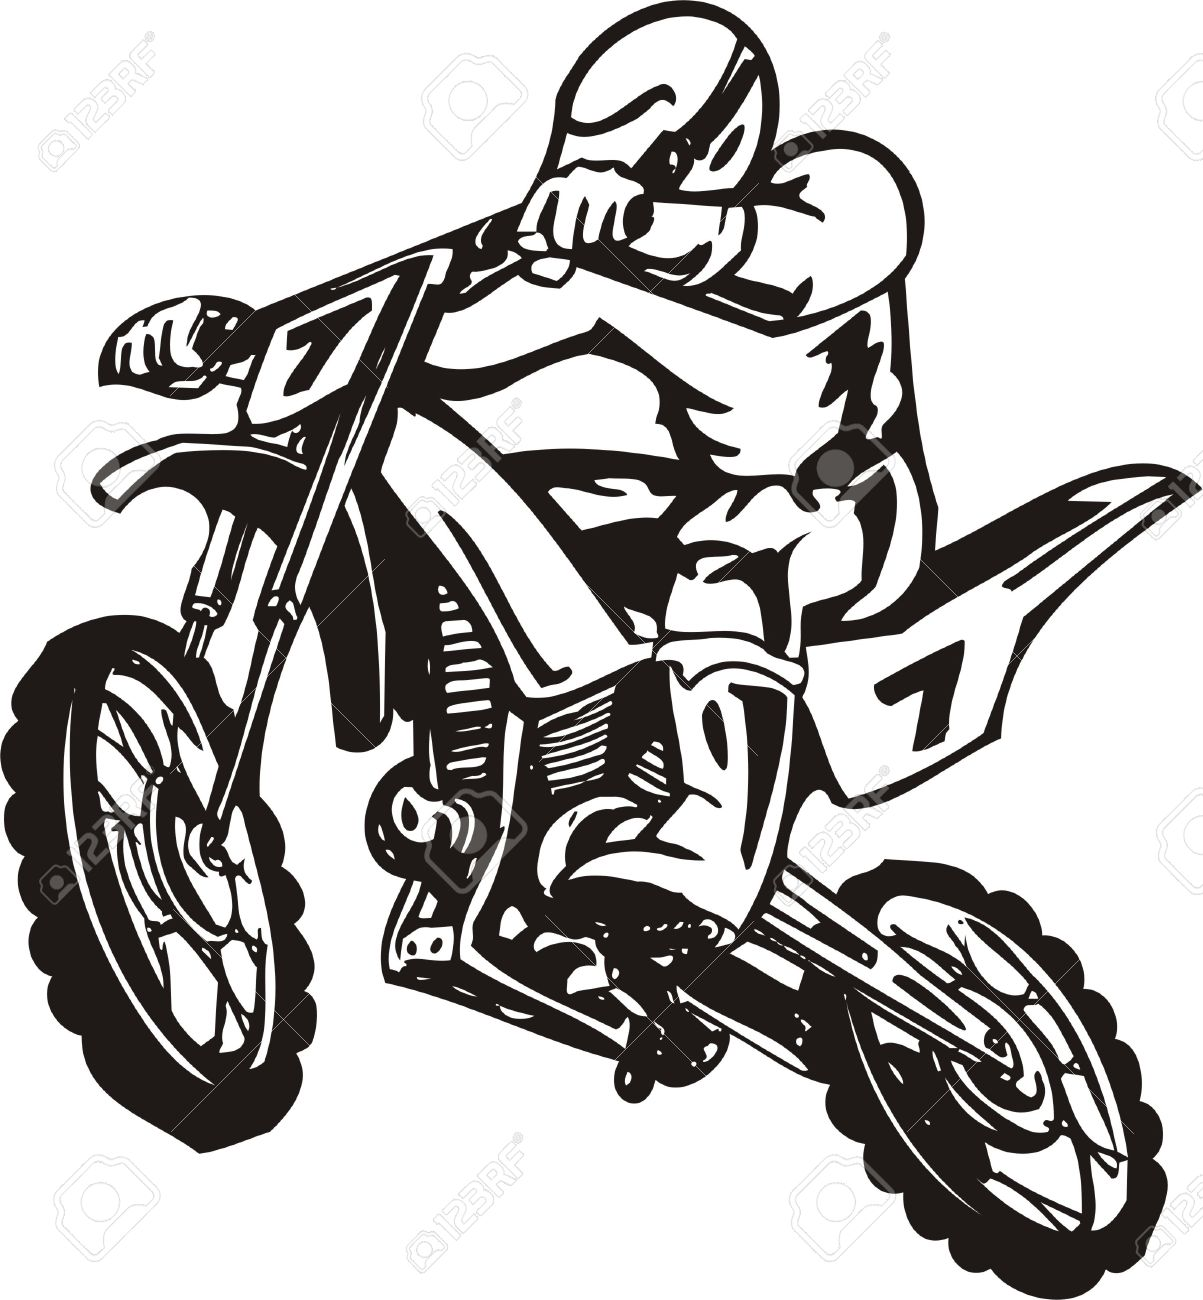 biker on motorcycle vector illustration royalty free cliparts rh 123rf com motorcycle vector images free motorcycle vector illustration